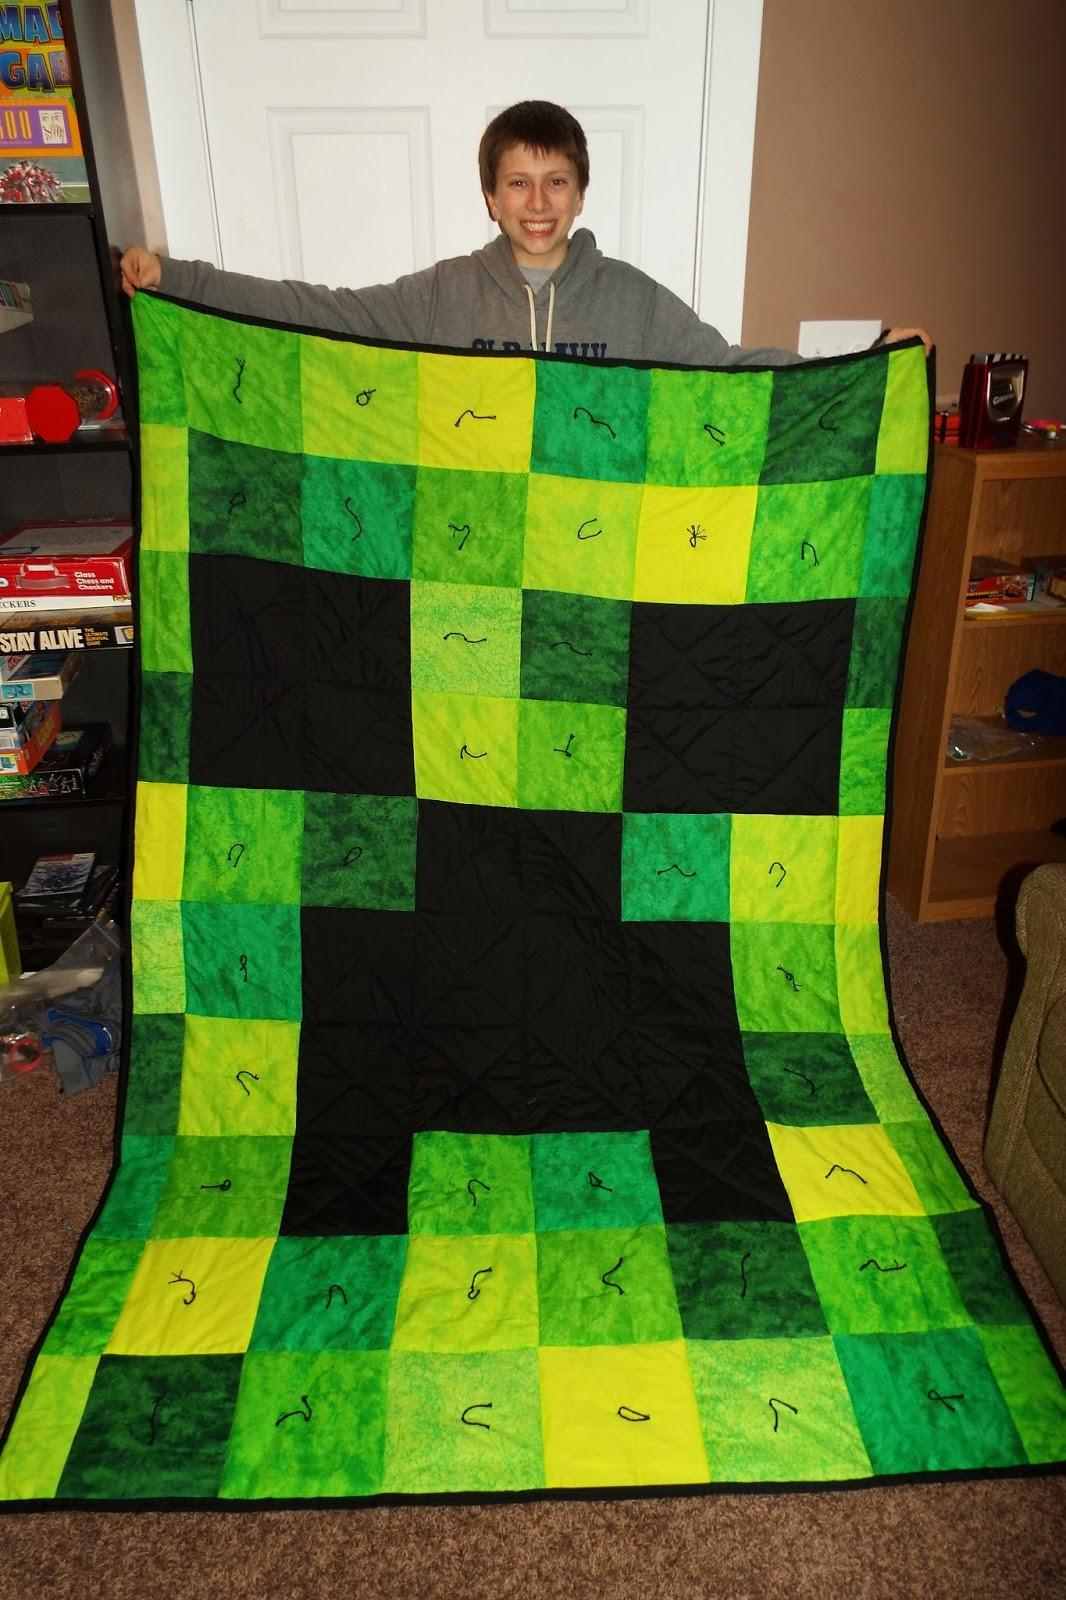 Hook 39 s happenings minecraft creeper quilt for Minecraft fabric by the yard